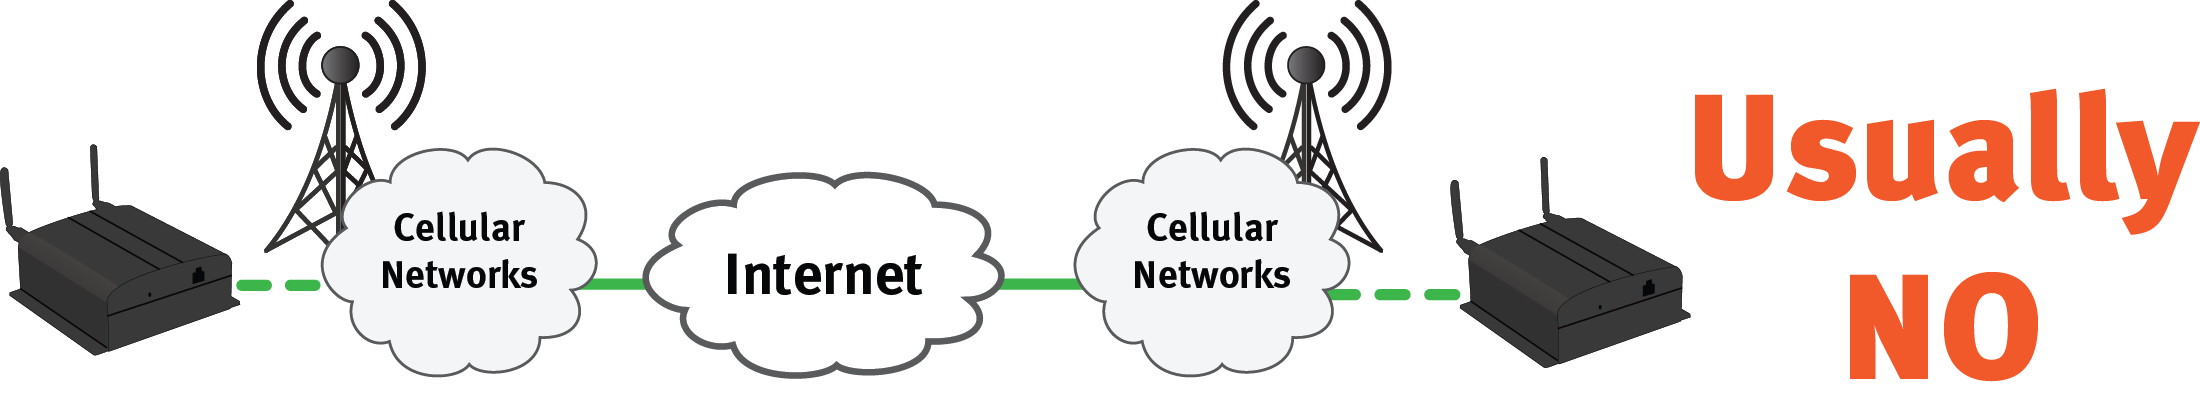 Cellular Data Network does not connec to the Internet